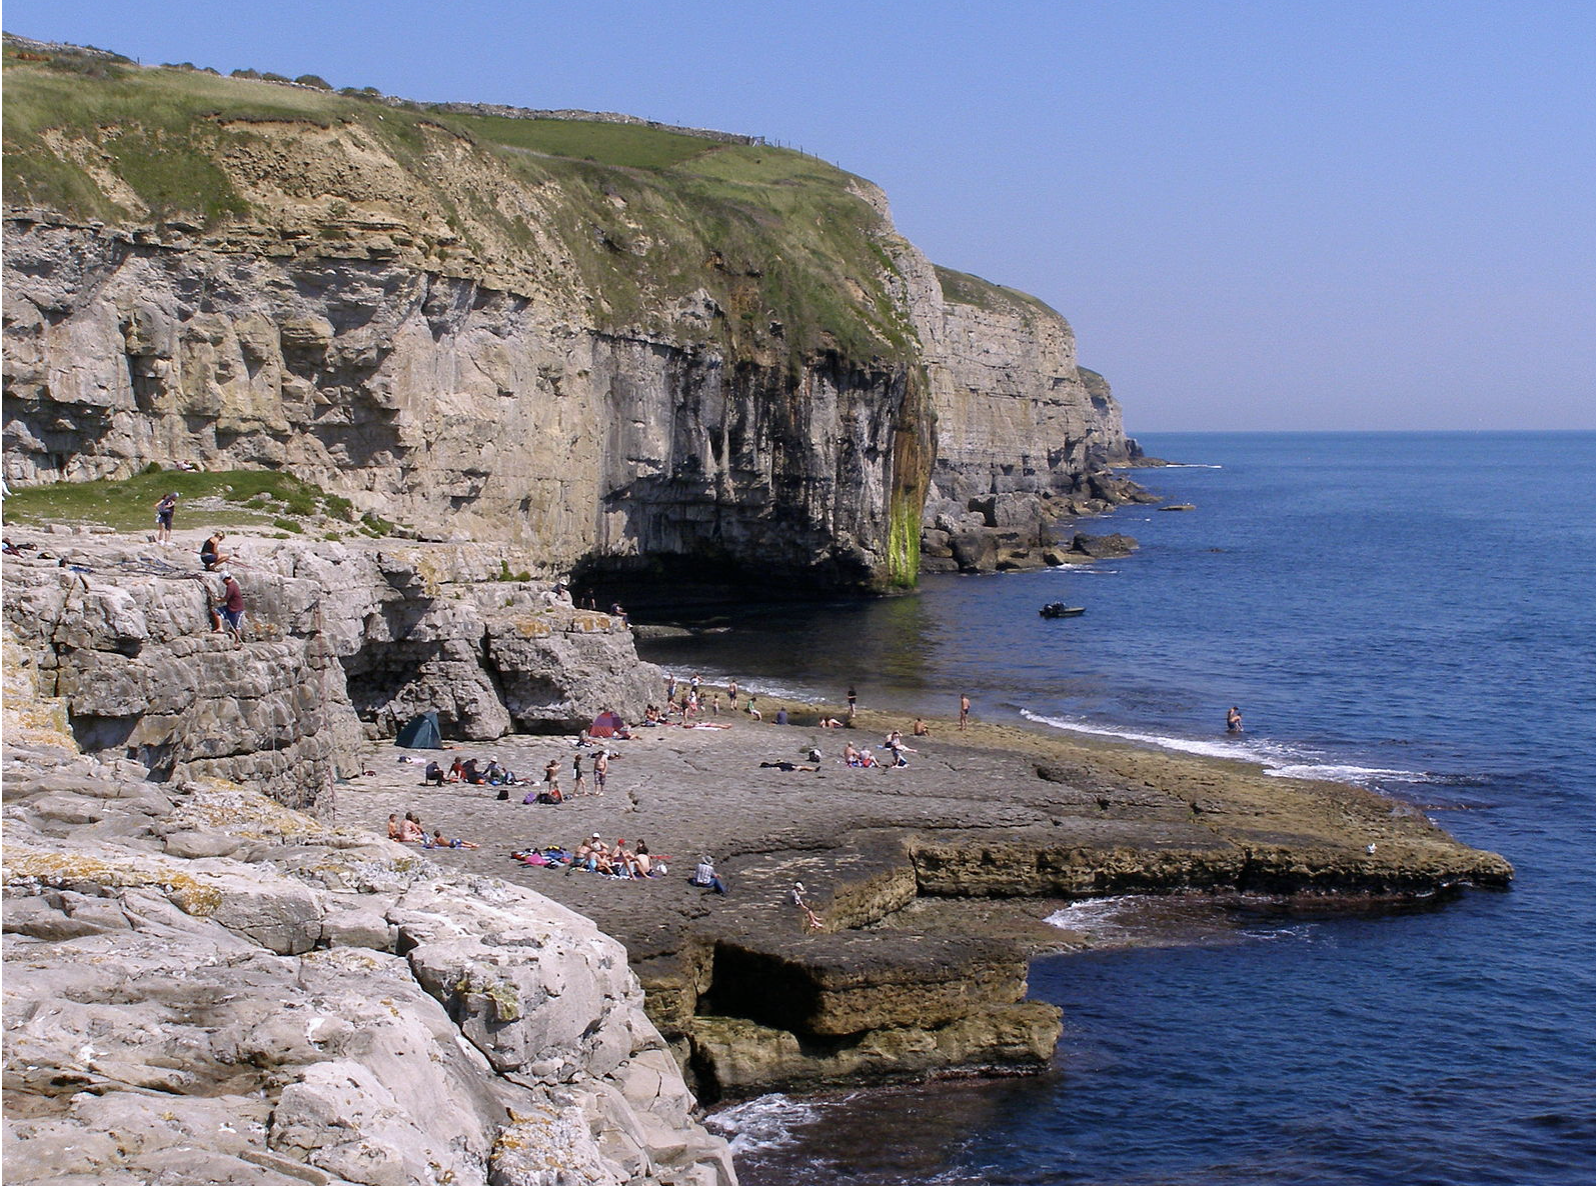 People sitting and sunbathing at Dancing Ledge